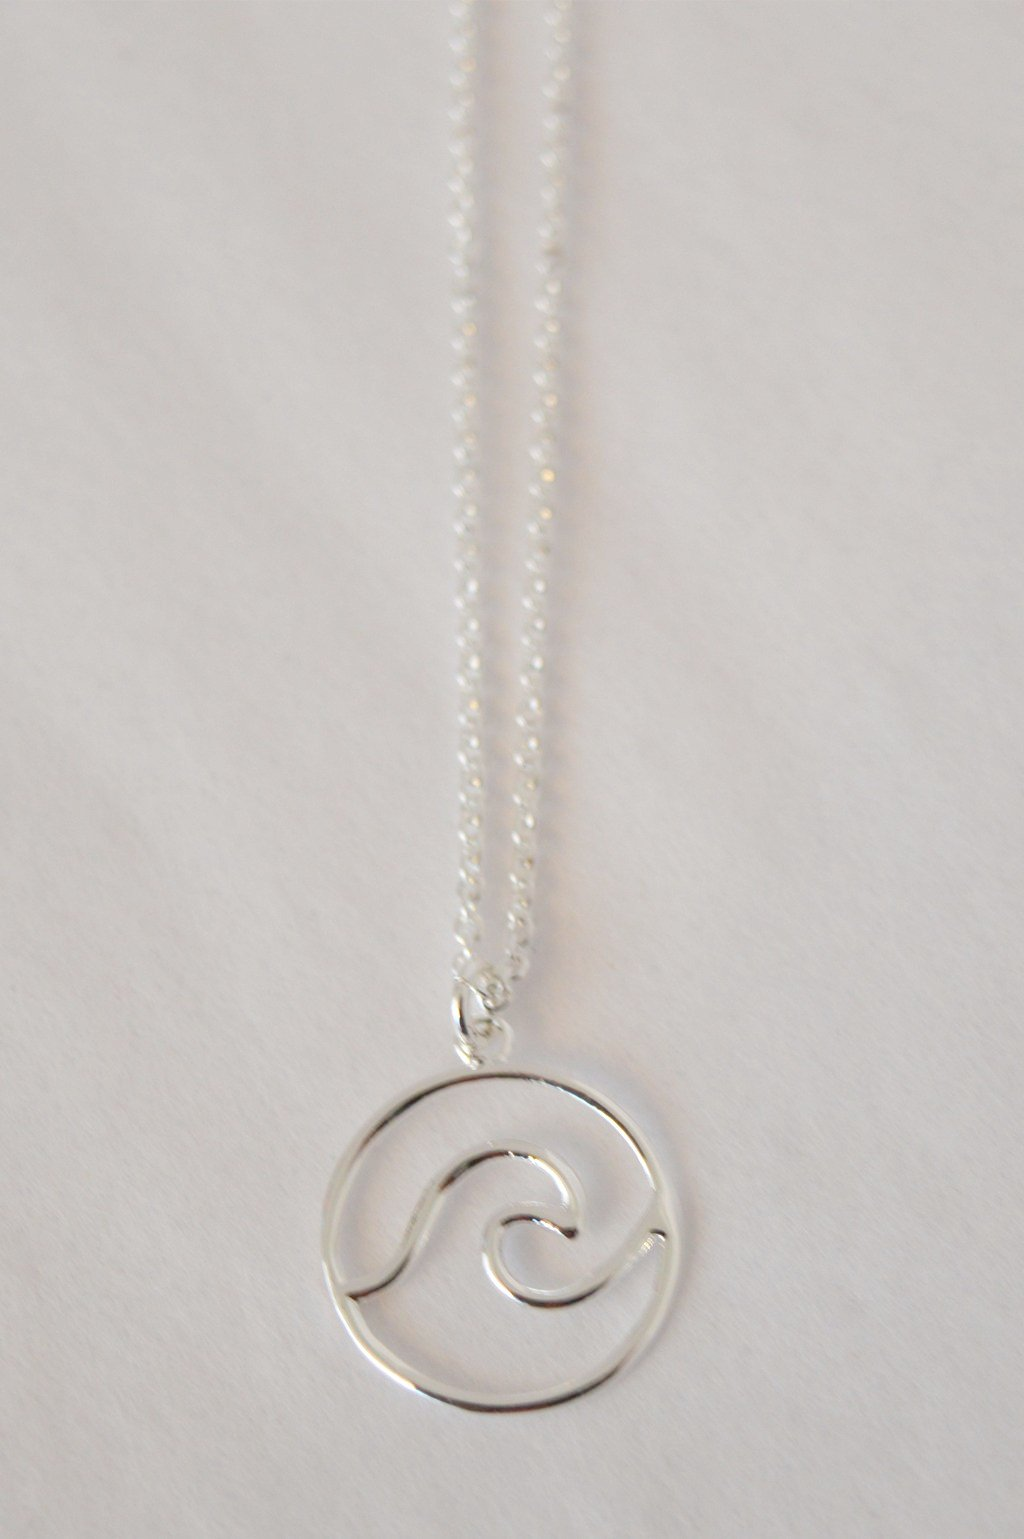 TRANQUILITY WAVE NECKLACE